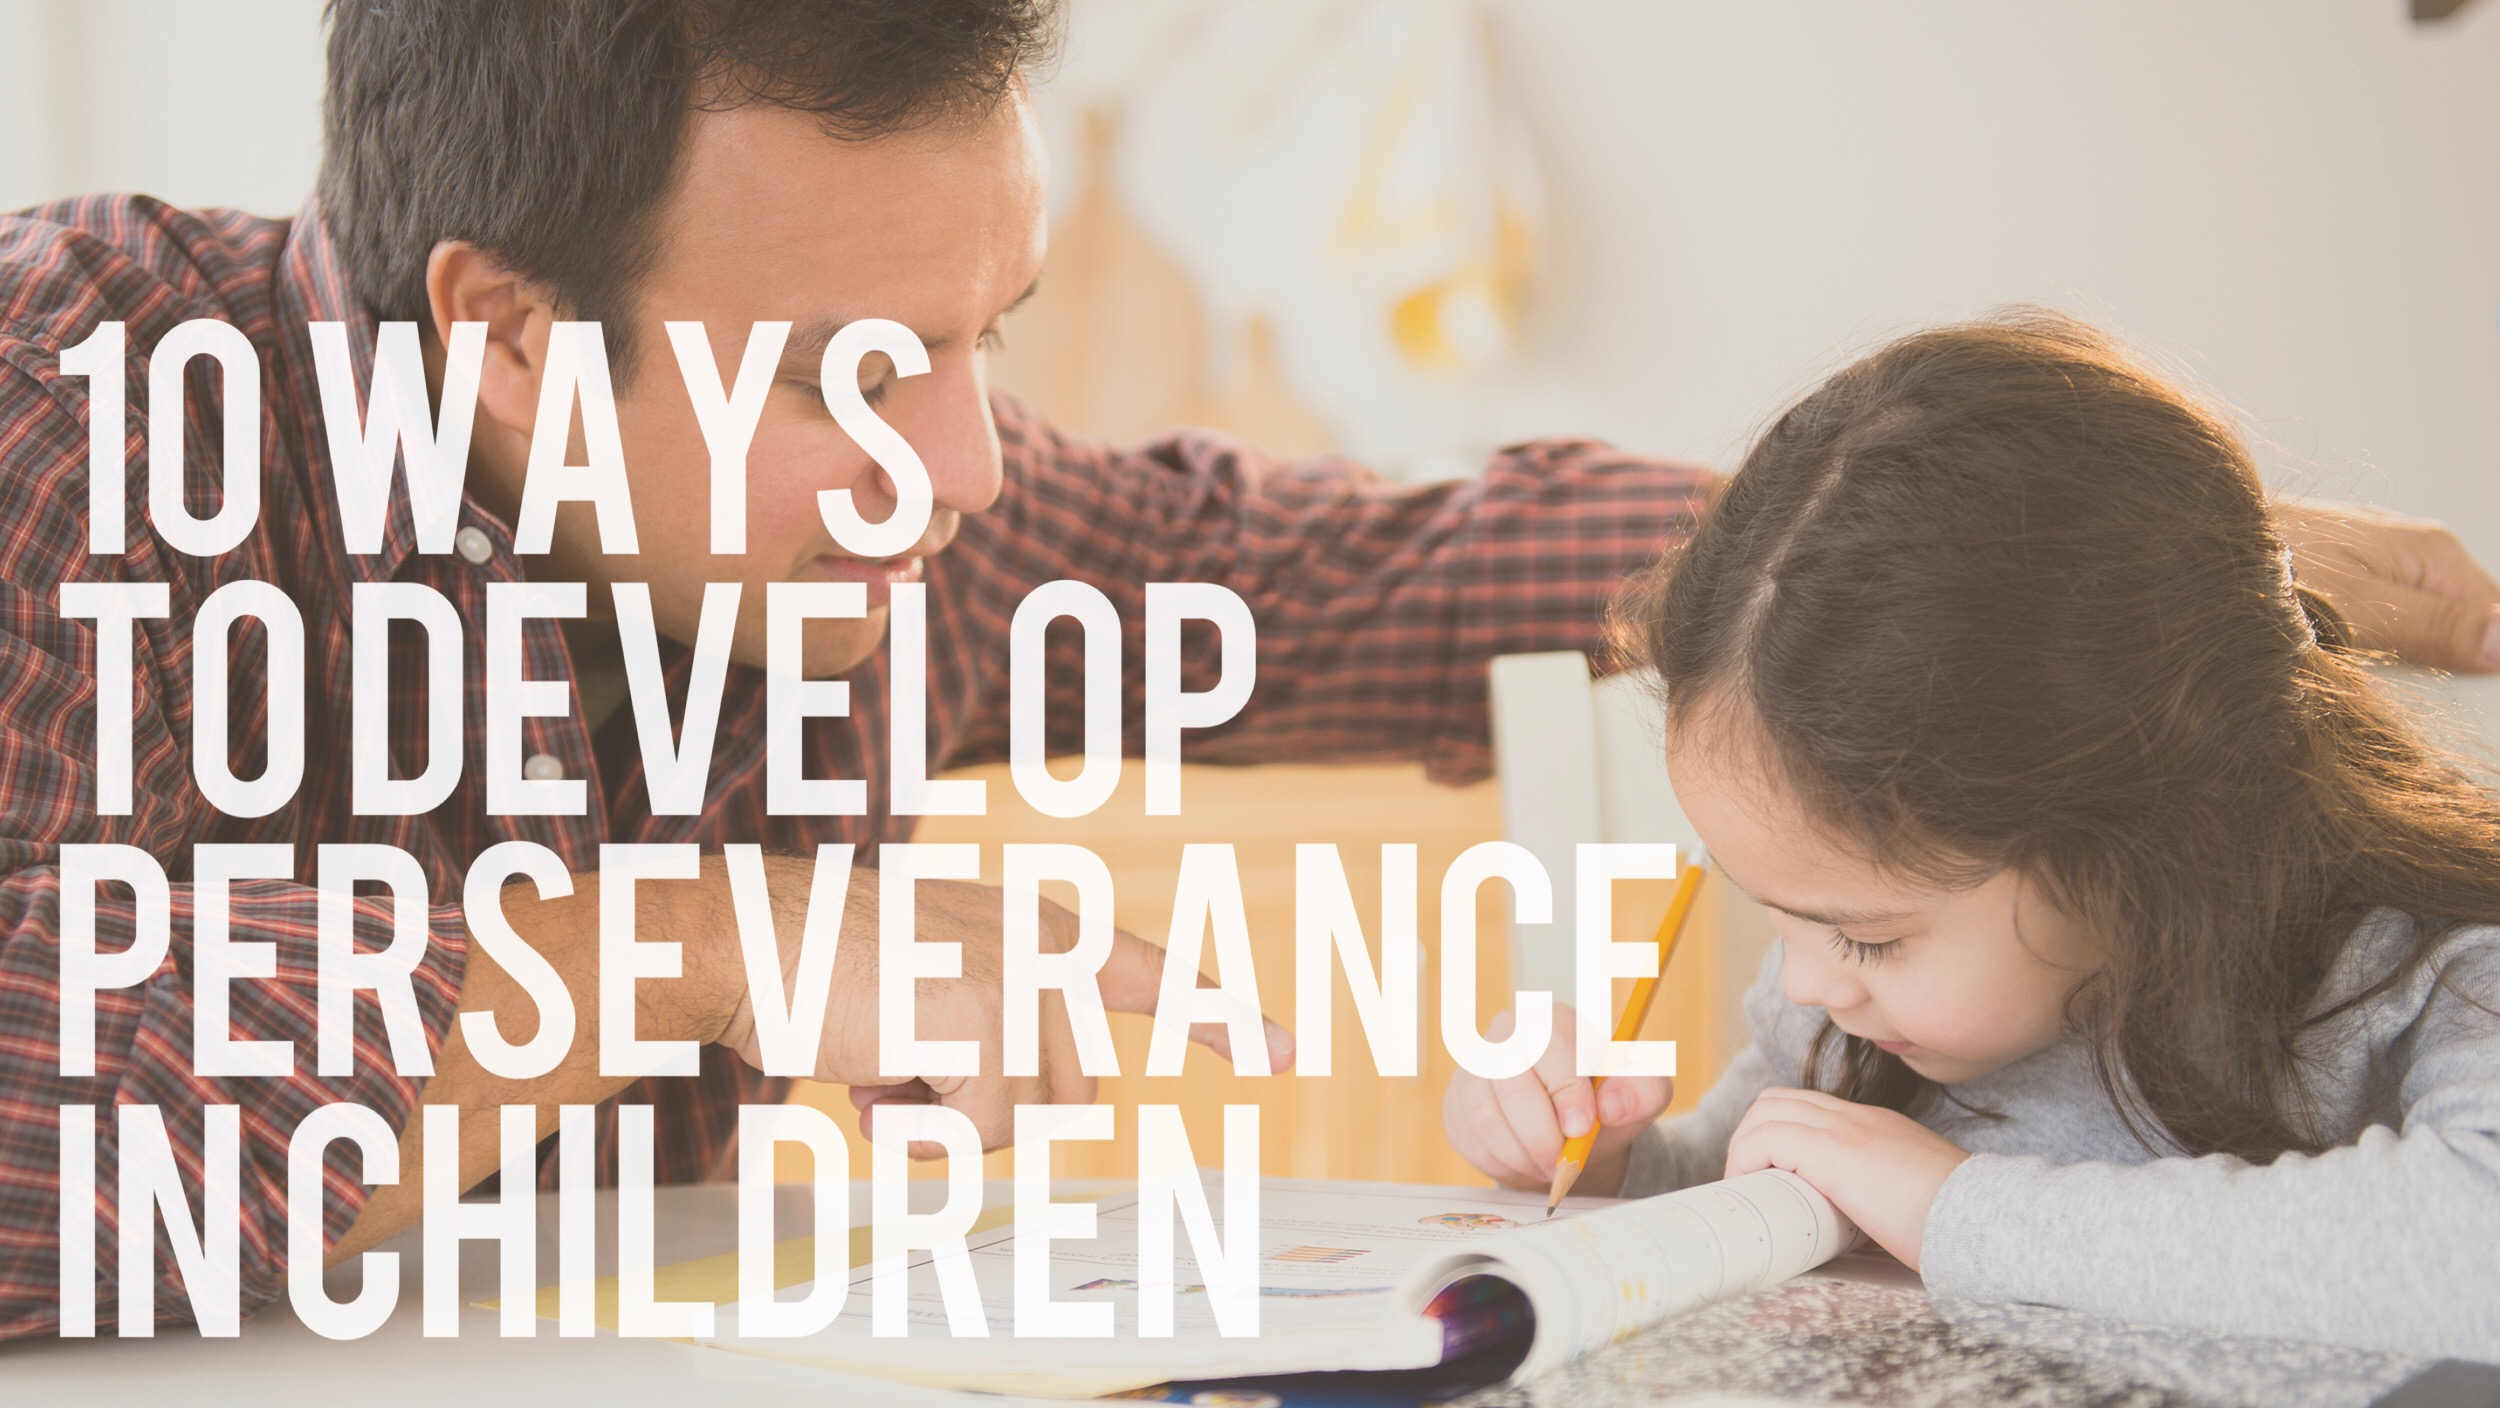 10 Ways to Develop Perseverance in Children